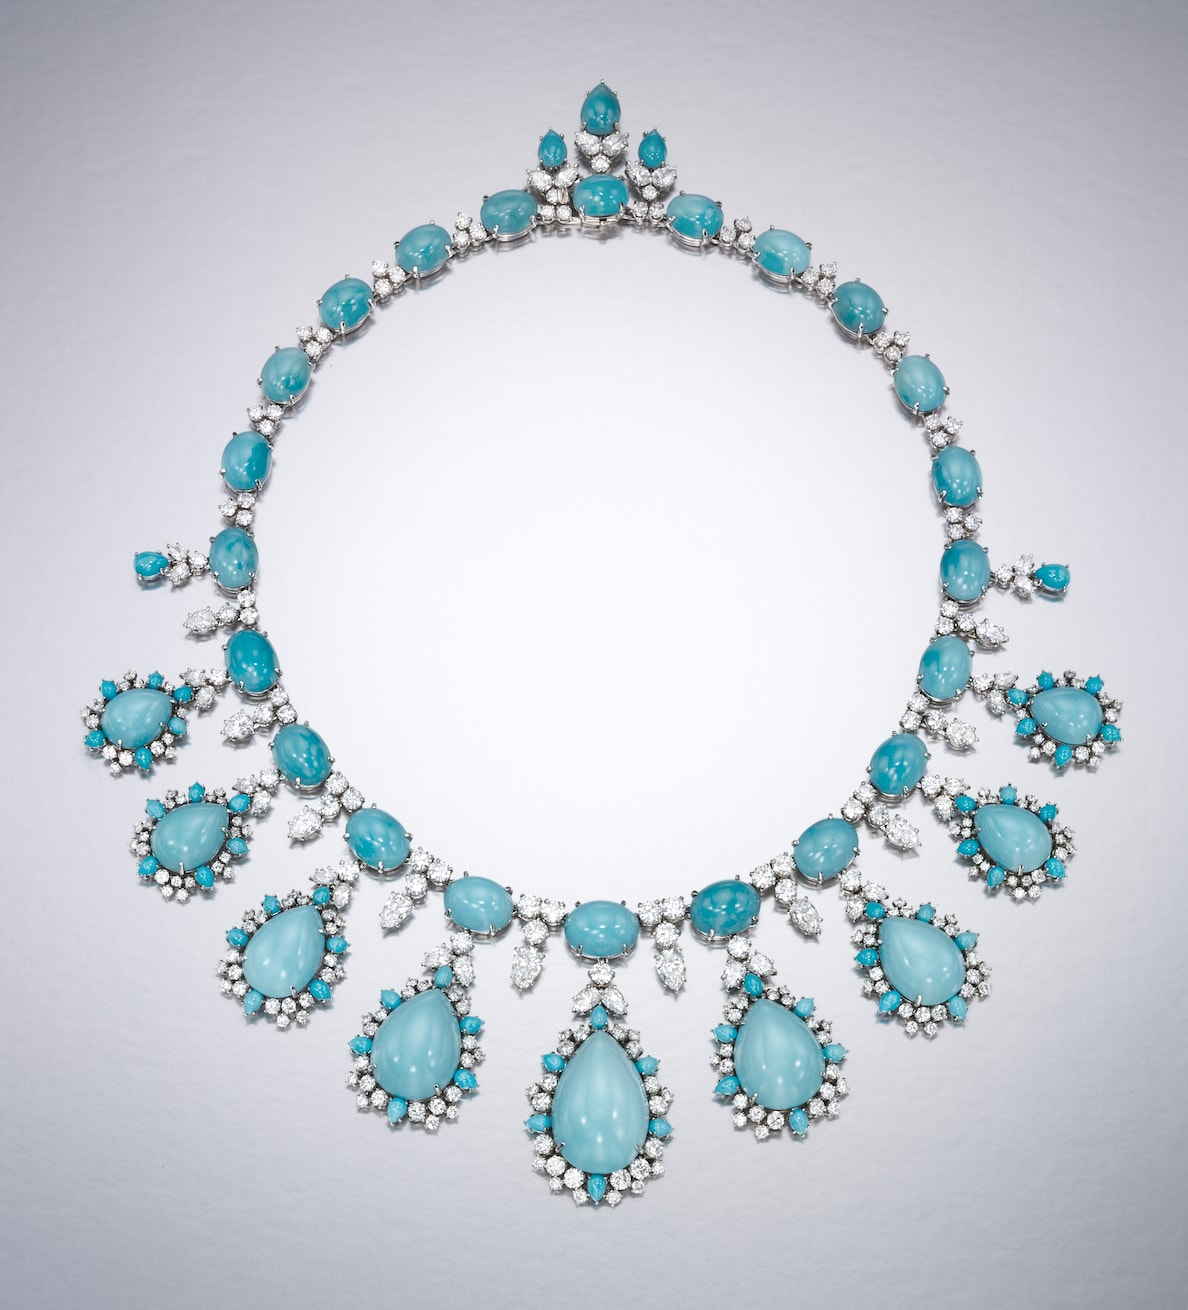 Turquoise-and-diamond-necklace